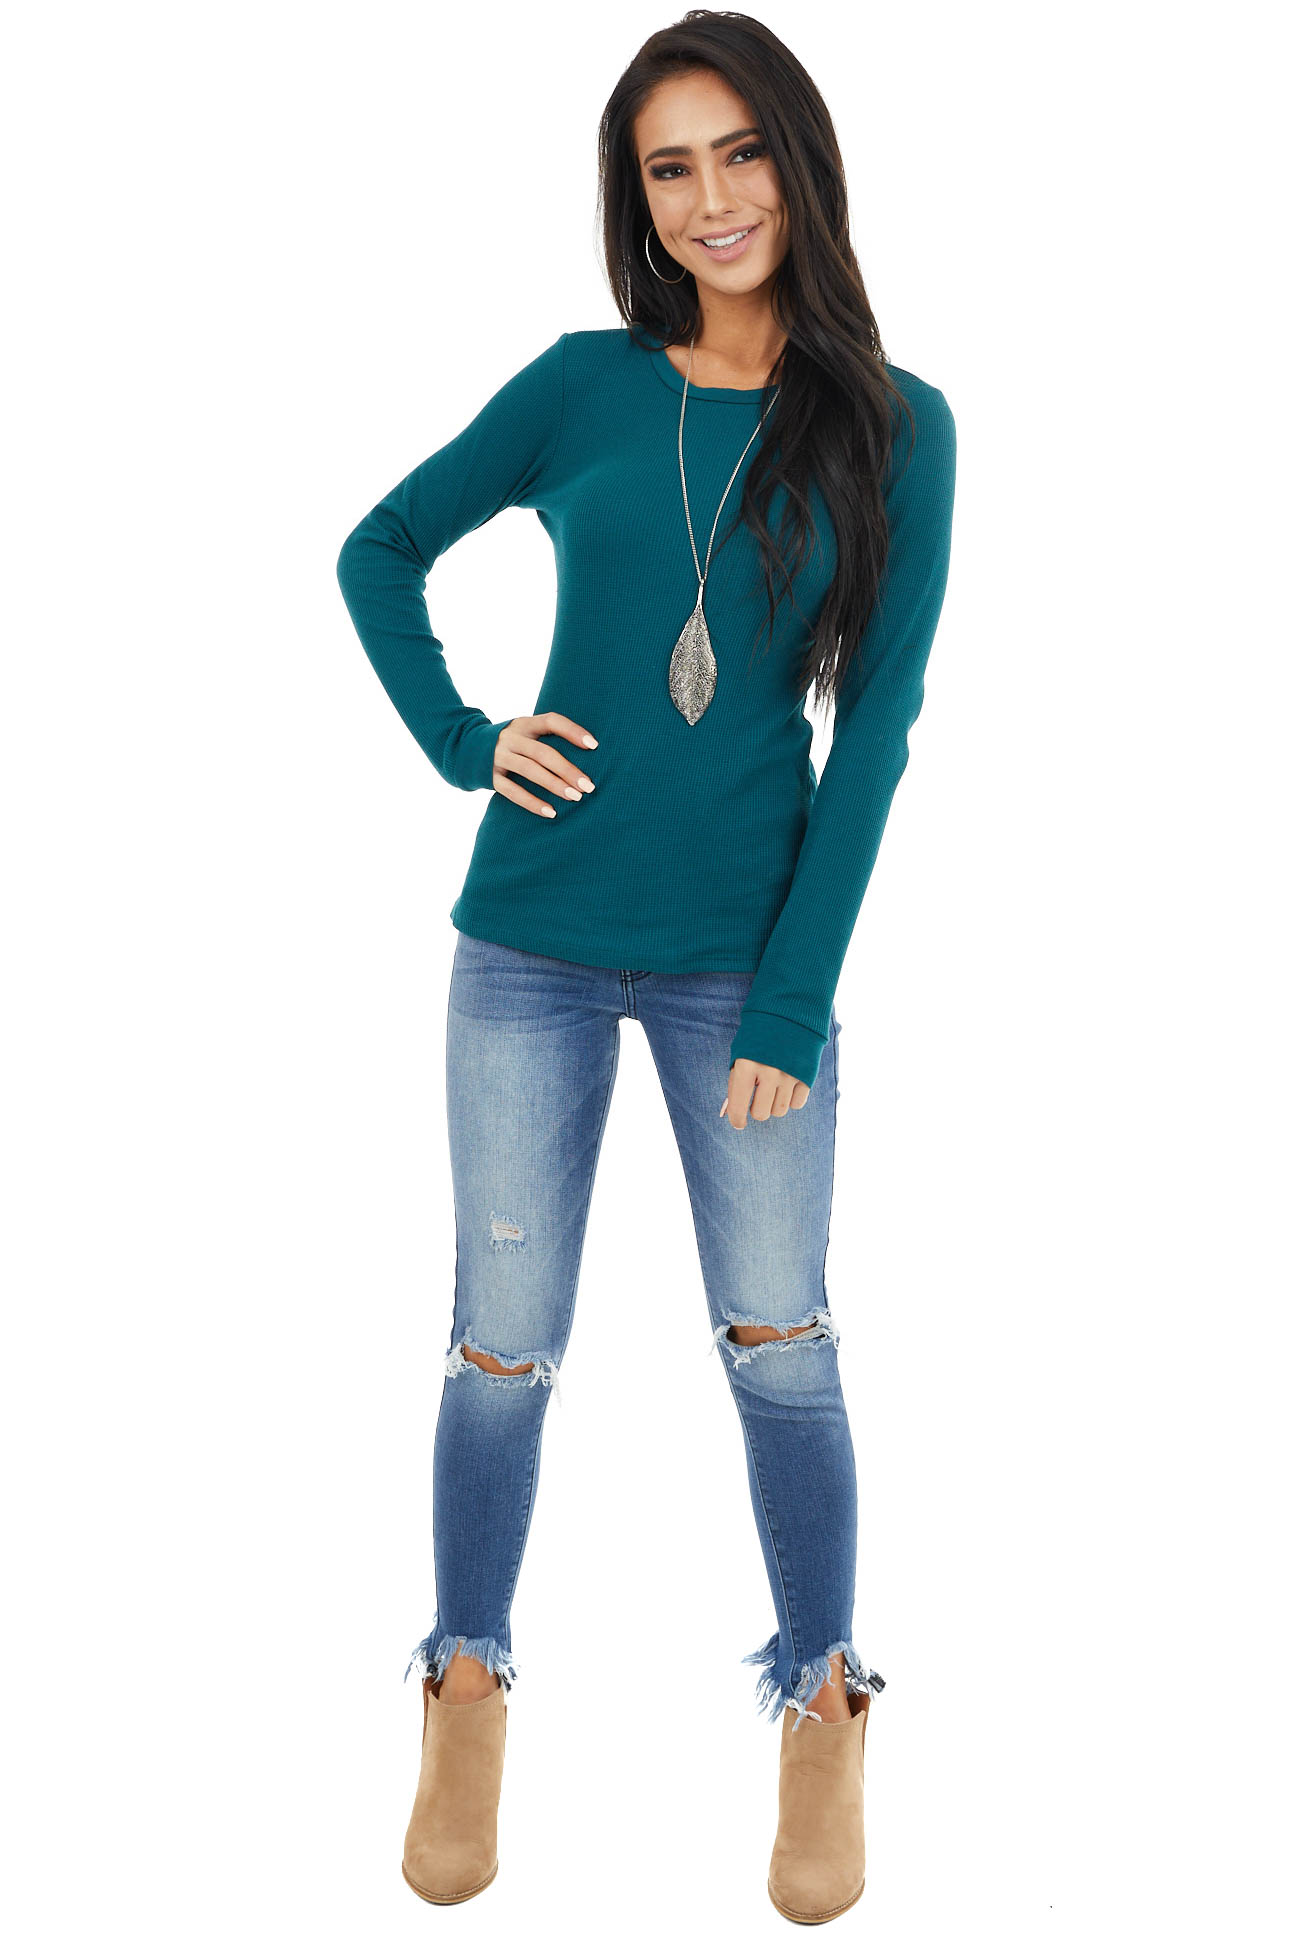 Pine Green Waffle Knit Top with Rounded Neckline